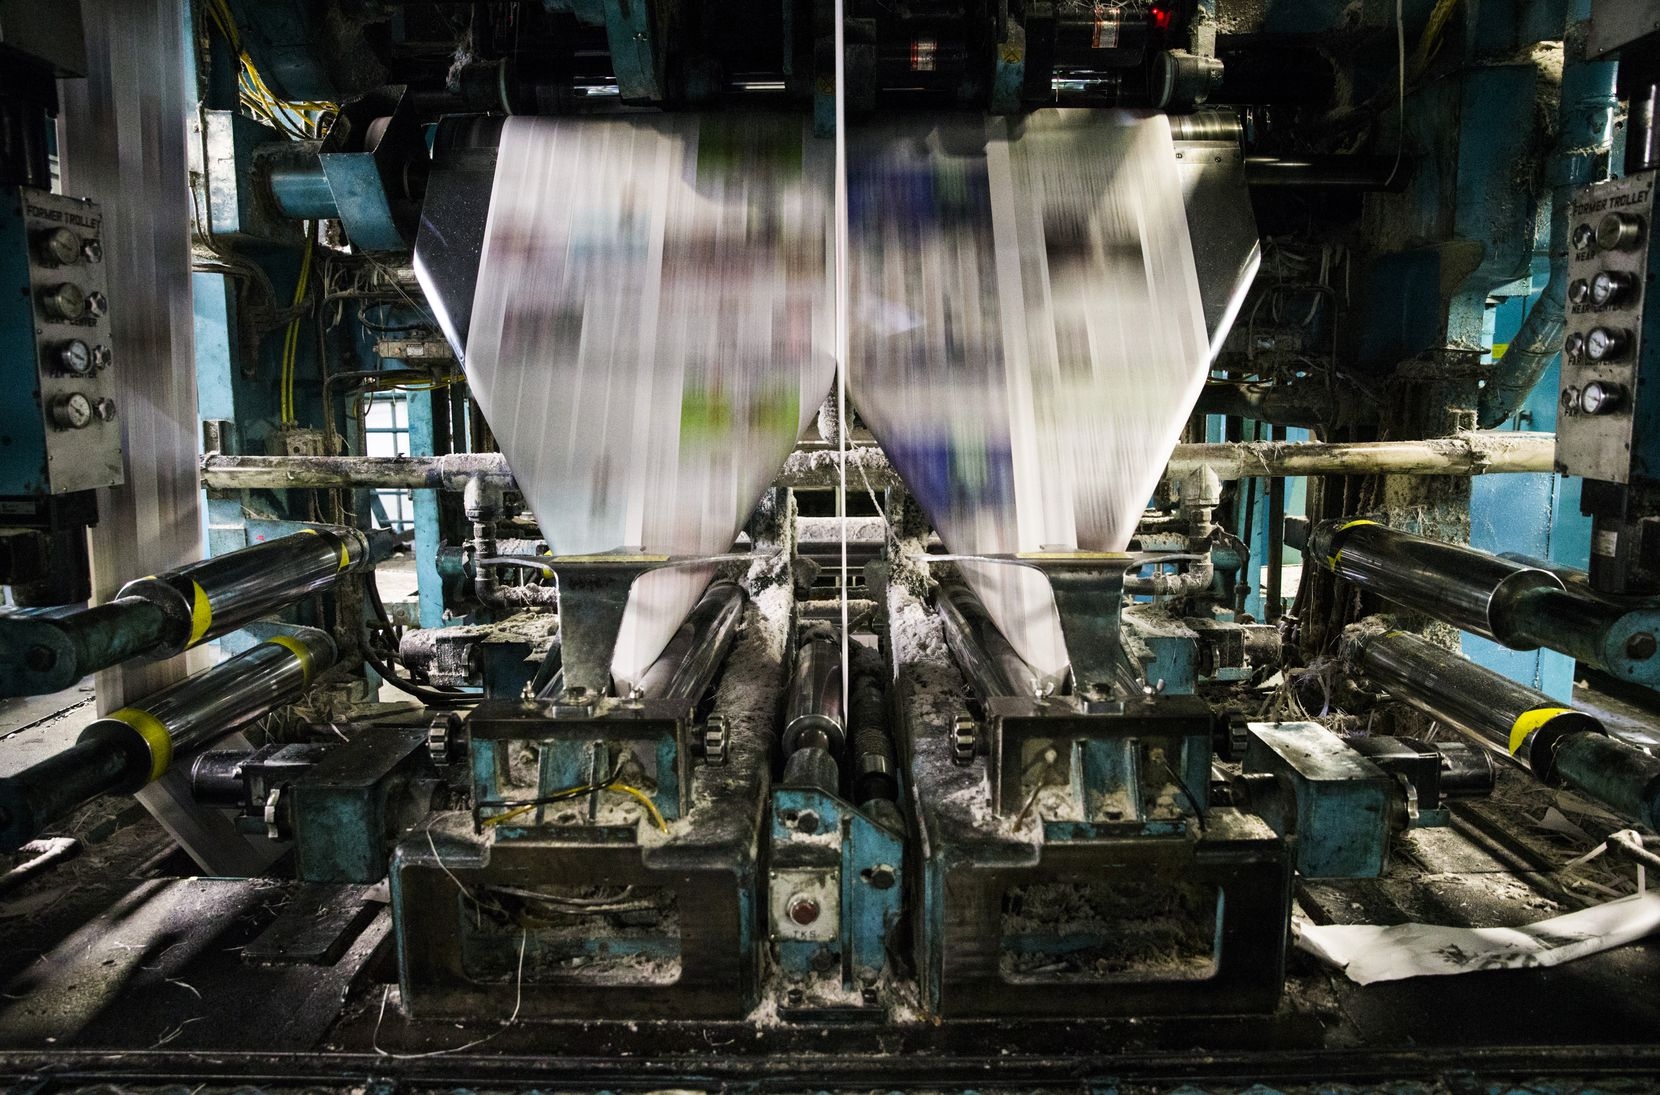 Presses roll at The News' printing plant in Plano. Several other publications, including USA Today, The New York Times, The Wall Street Journal and the Fort Worth Star-Telegram, are printed at the plant.